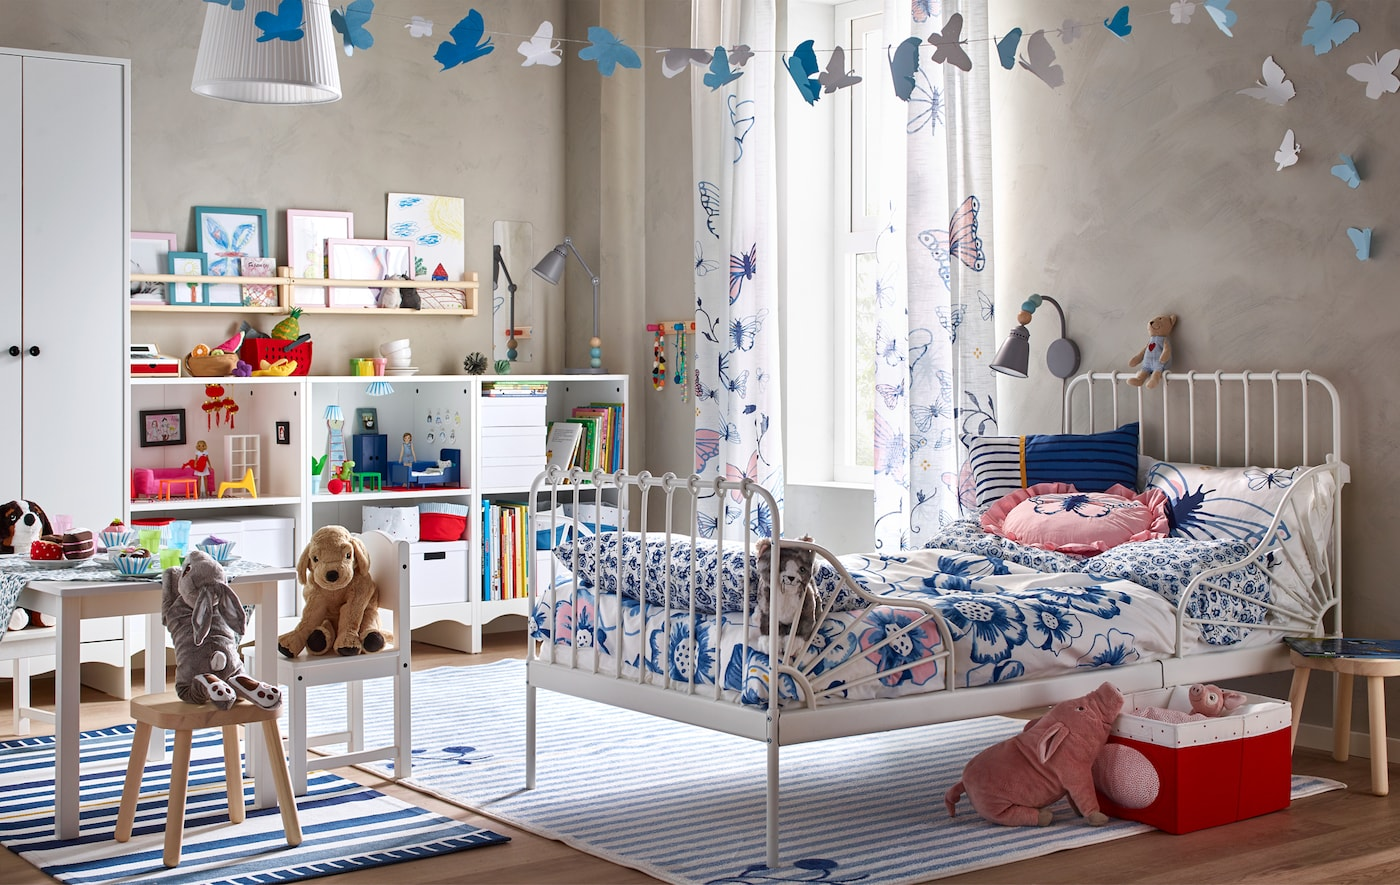 A child's bedroom with white bed, floral textiles, a mini table and chairs, and a storage unit full of books, boxes and toys.